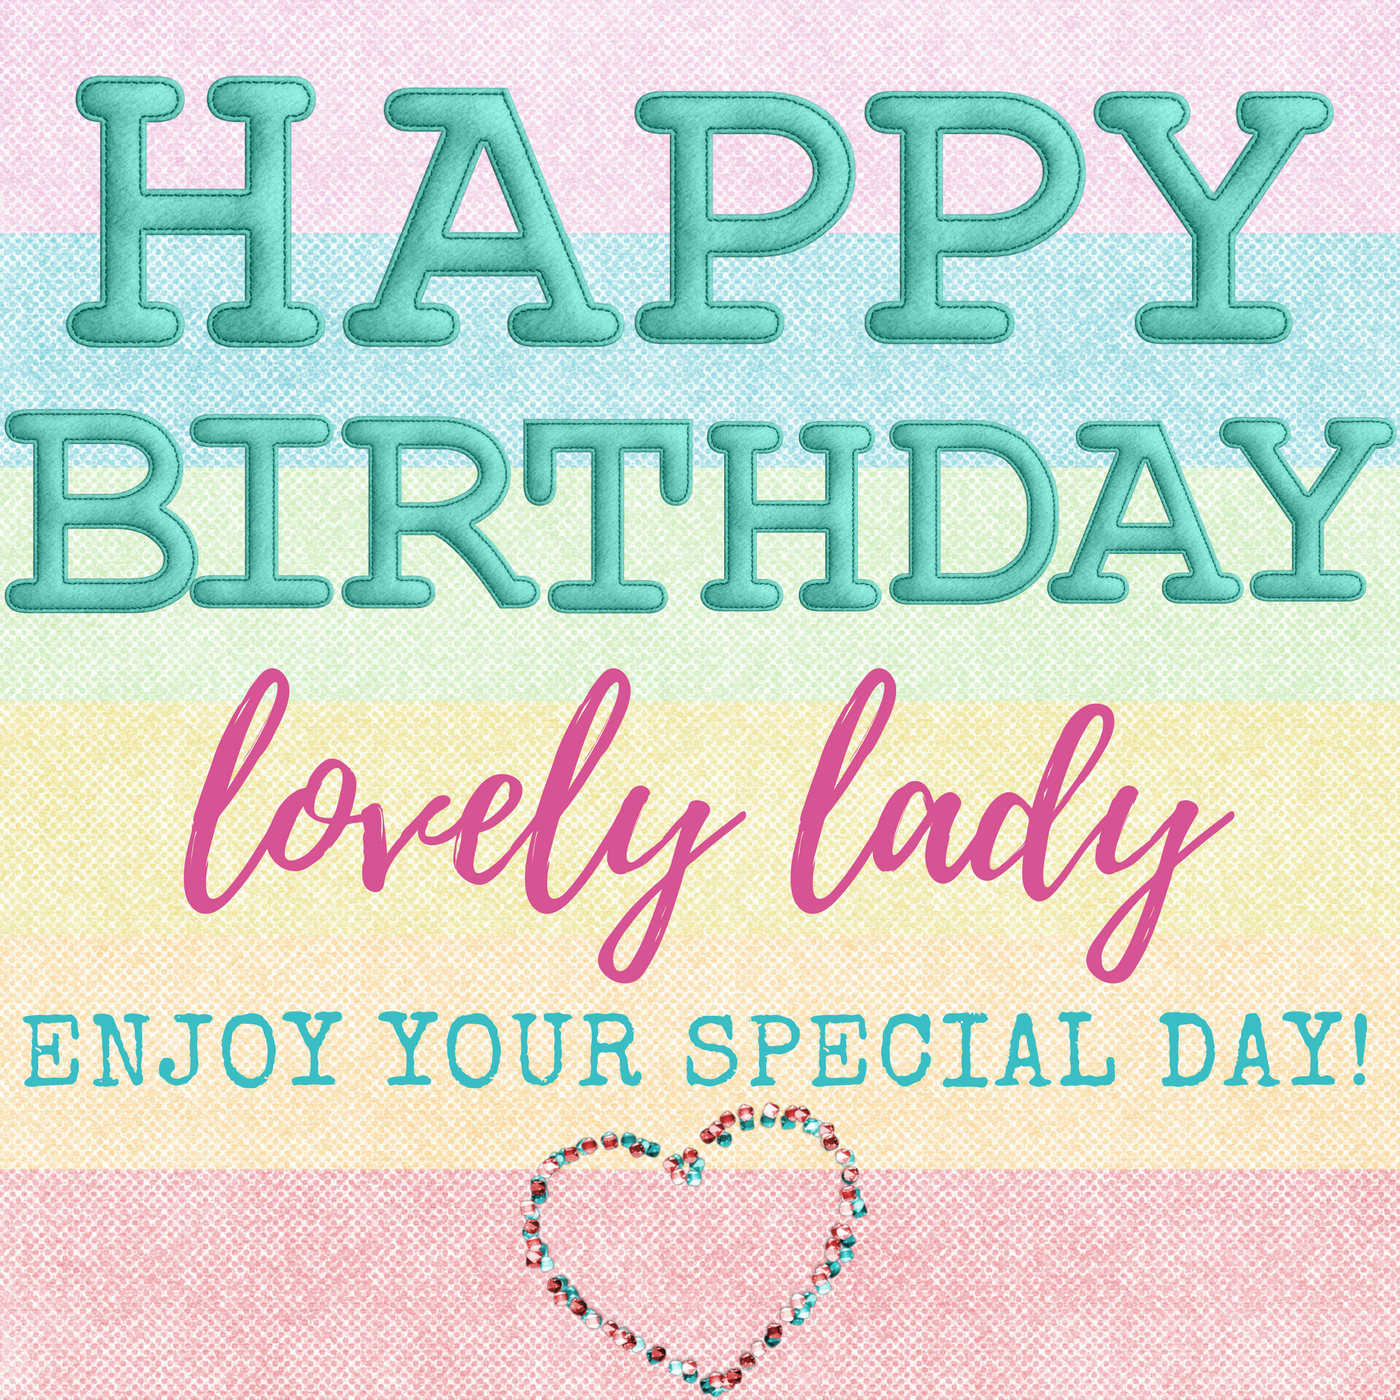 Happy B Day Lovely Lady With Images Happy Birthday Wishes For